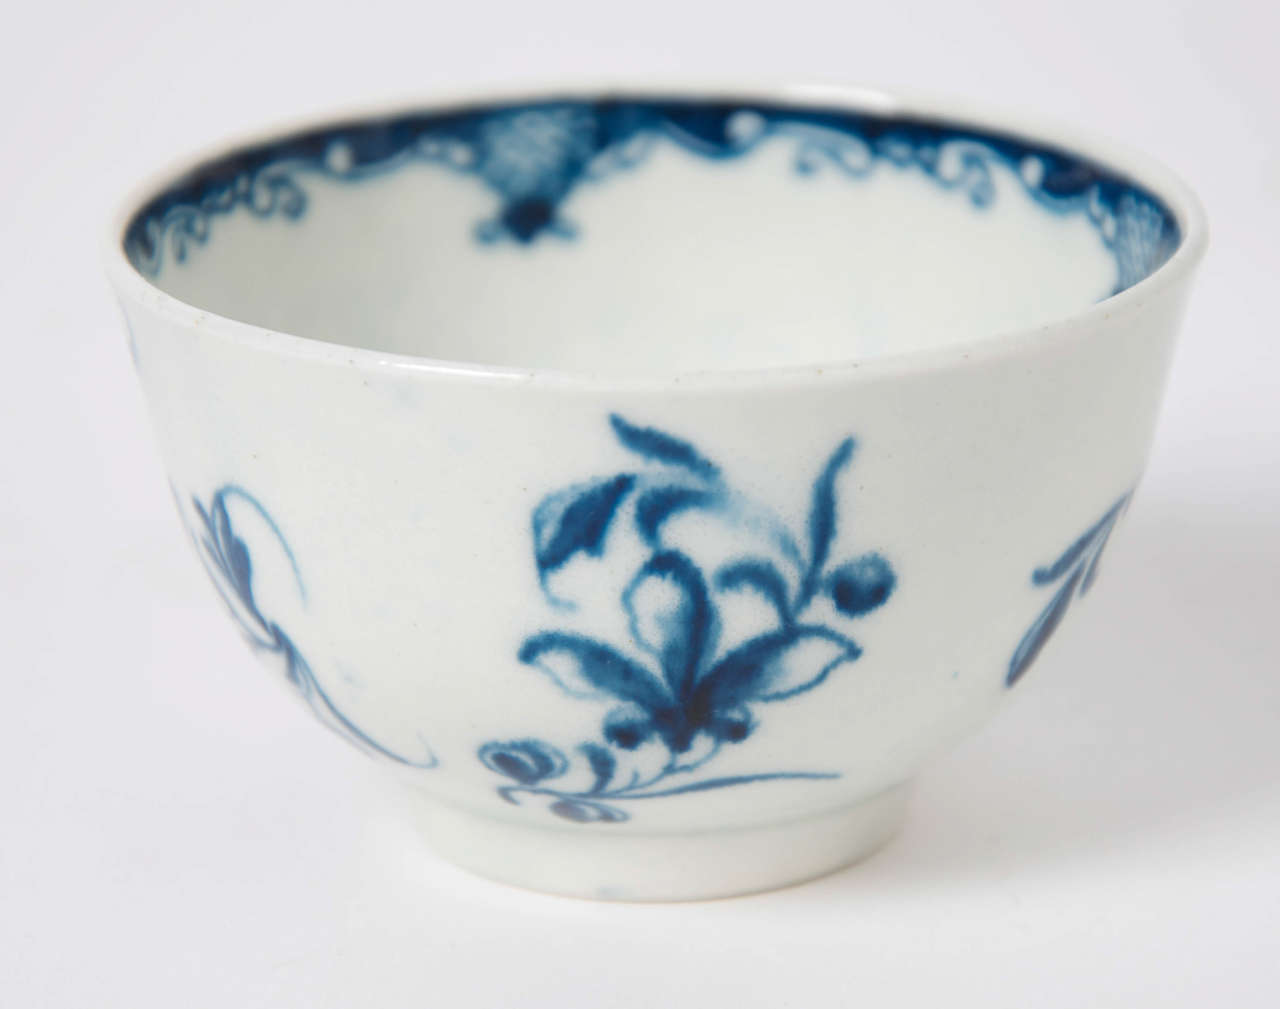 18th Century First Period Worcester Porcelain Tea Bowl and Saucer Mansfield Pattern, Ca 1765 For Sale